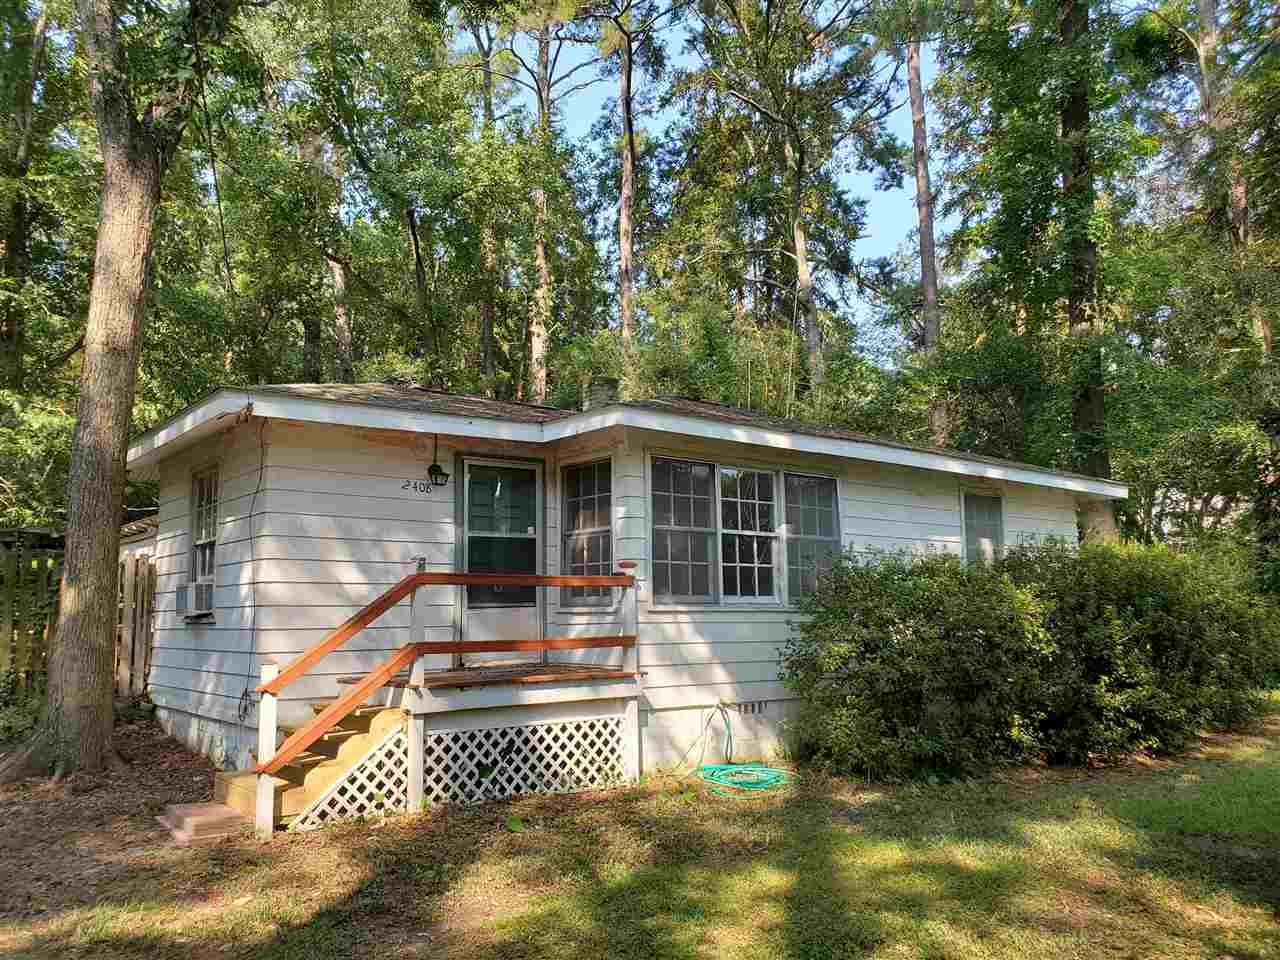 Photo for 2408 Old Saint Augustine Road, TALLAHASSEE, FL 32301 (MLS # 313255)